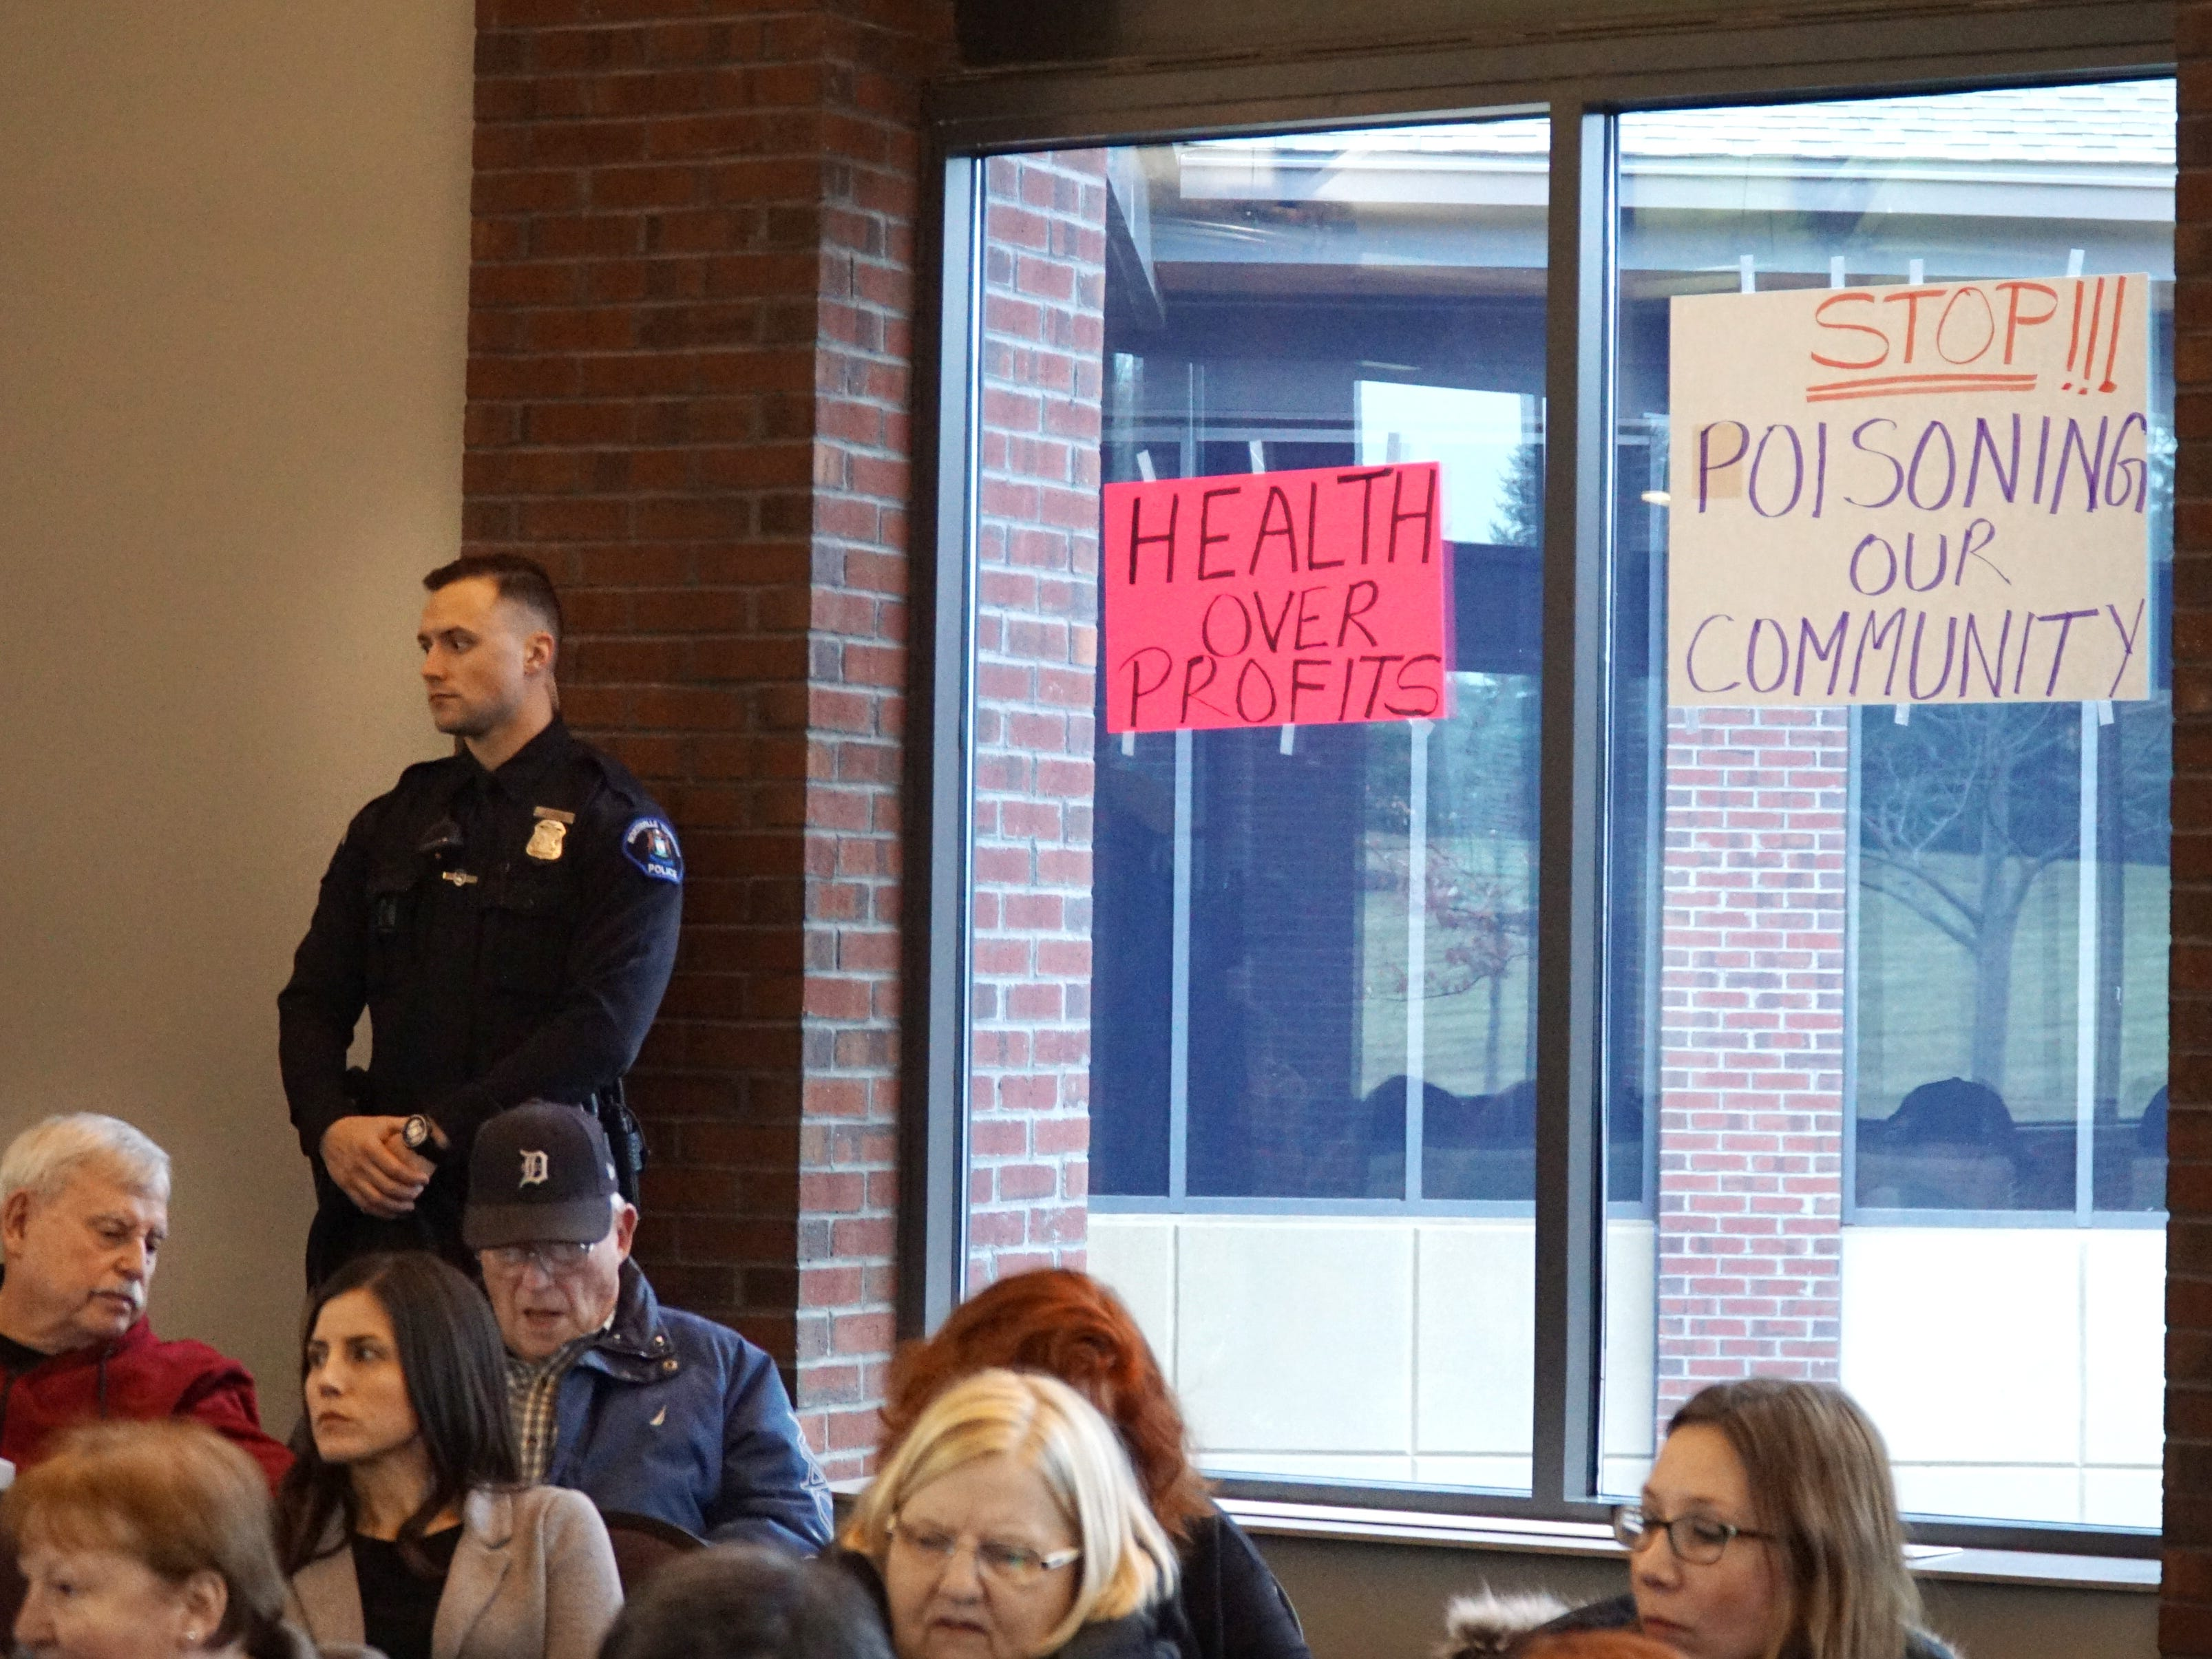 Some in attendance of the March 21 meeting posted signs on the windows of the meeting room - expressing their displeasure with the landfill and efforts to mitigate its smell and toxic releases.